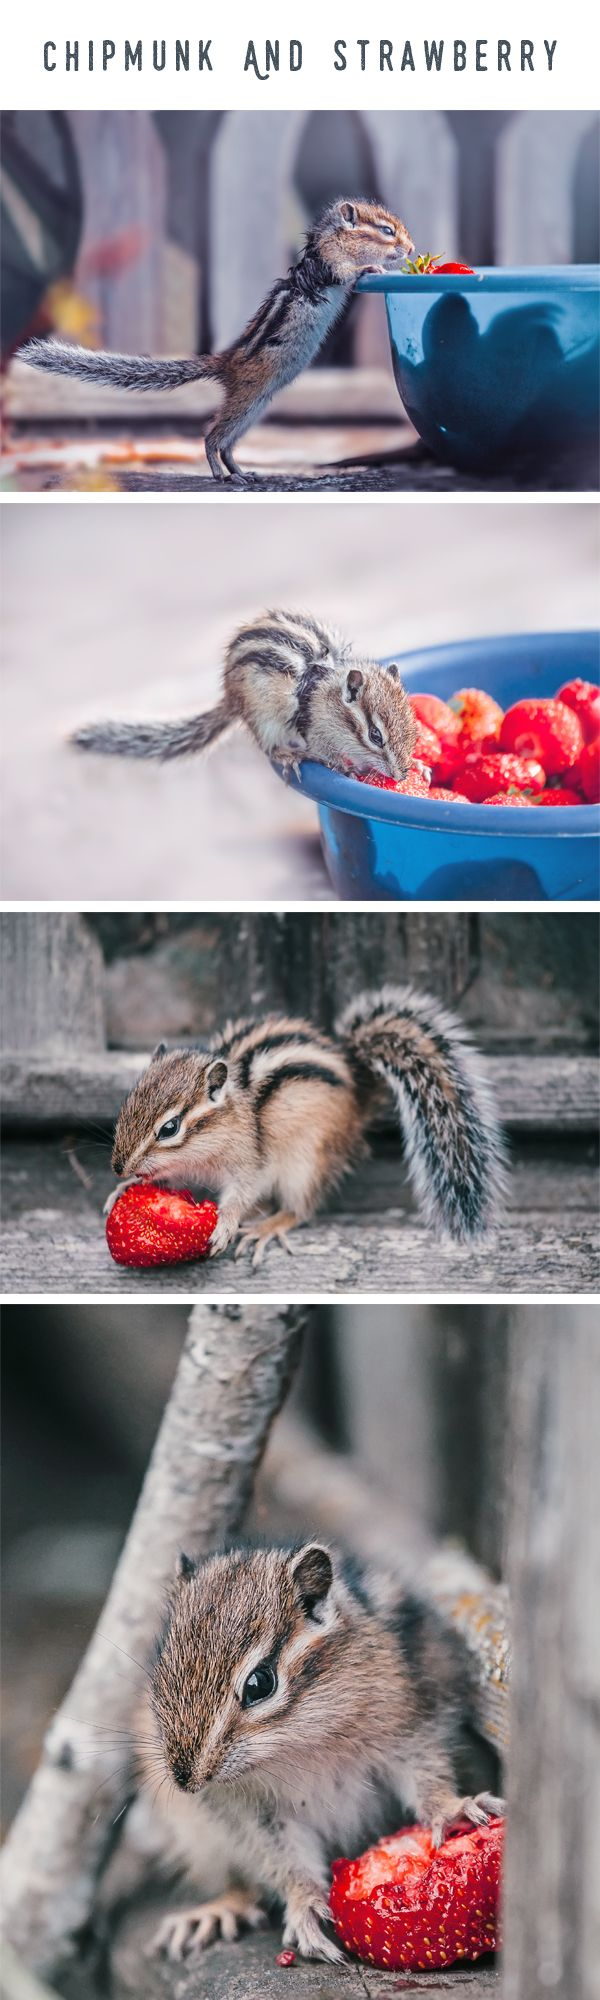 Live of Little chipmunk eating a strawberry on a wooden fence. Cute Chipmunk with Strawberry by Oksana Ariskina. Available as mugs, posters, greeting cards, phone cases, throw pillows, framed fine art prints, metal, acrylic or canvas prints, shower curtains, duvet covers with my fine art photography online: www.oksana-ariskina.pixels.com #OksanaAriskina